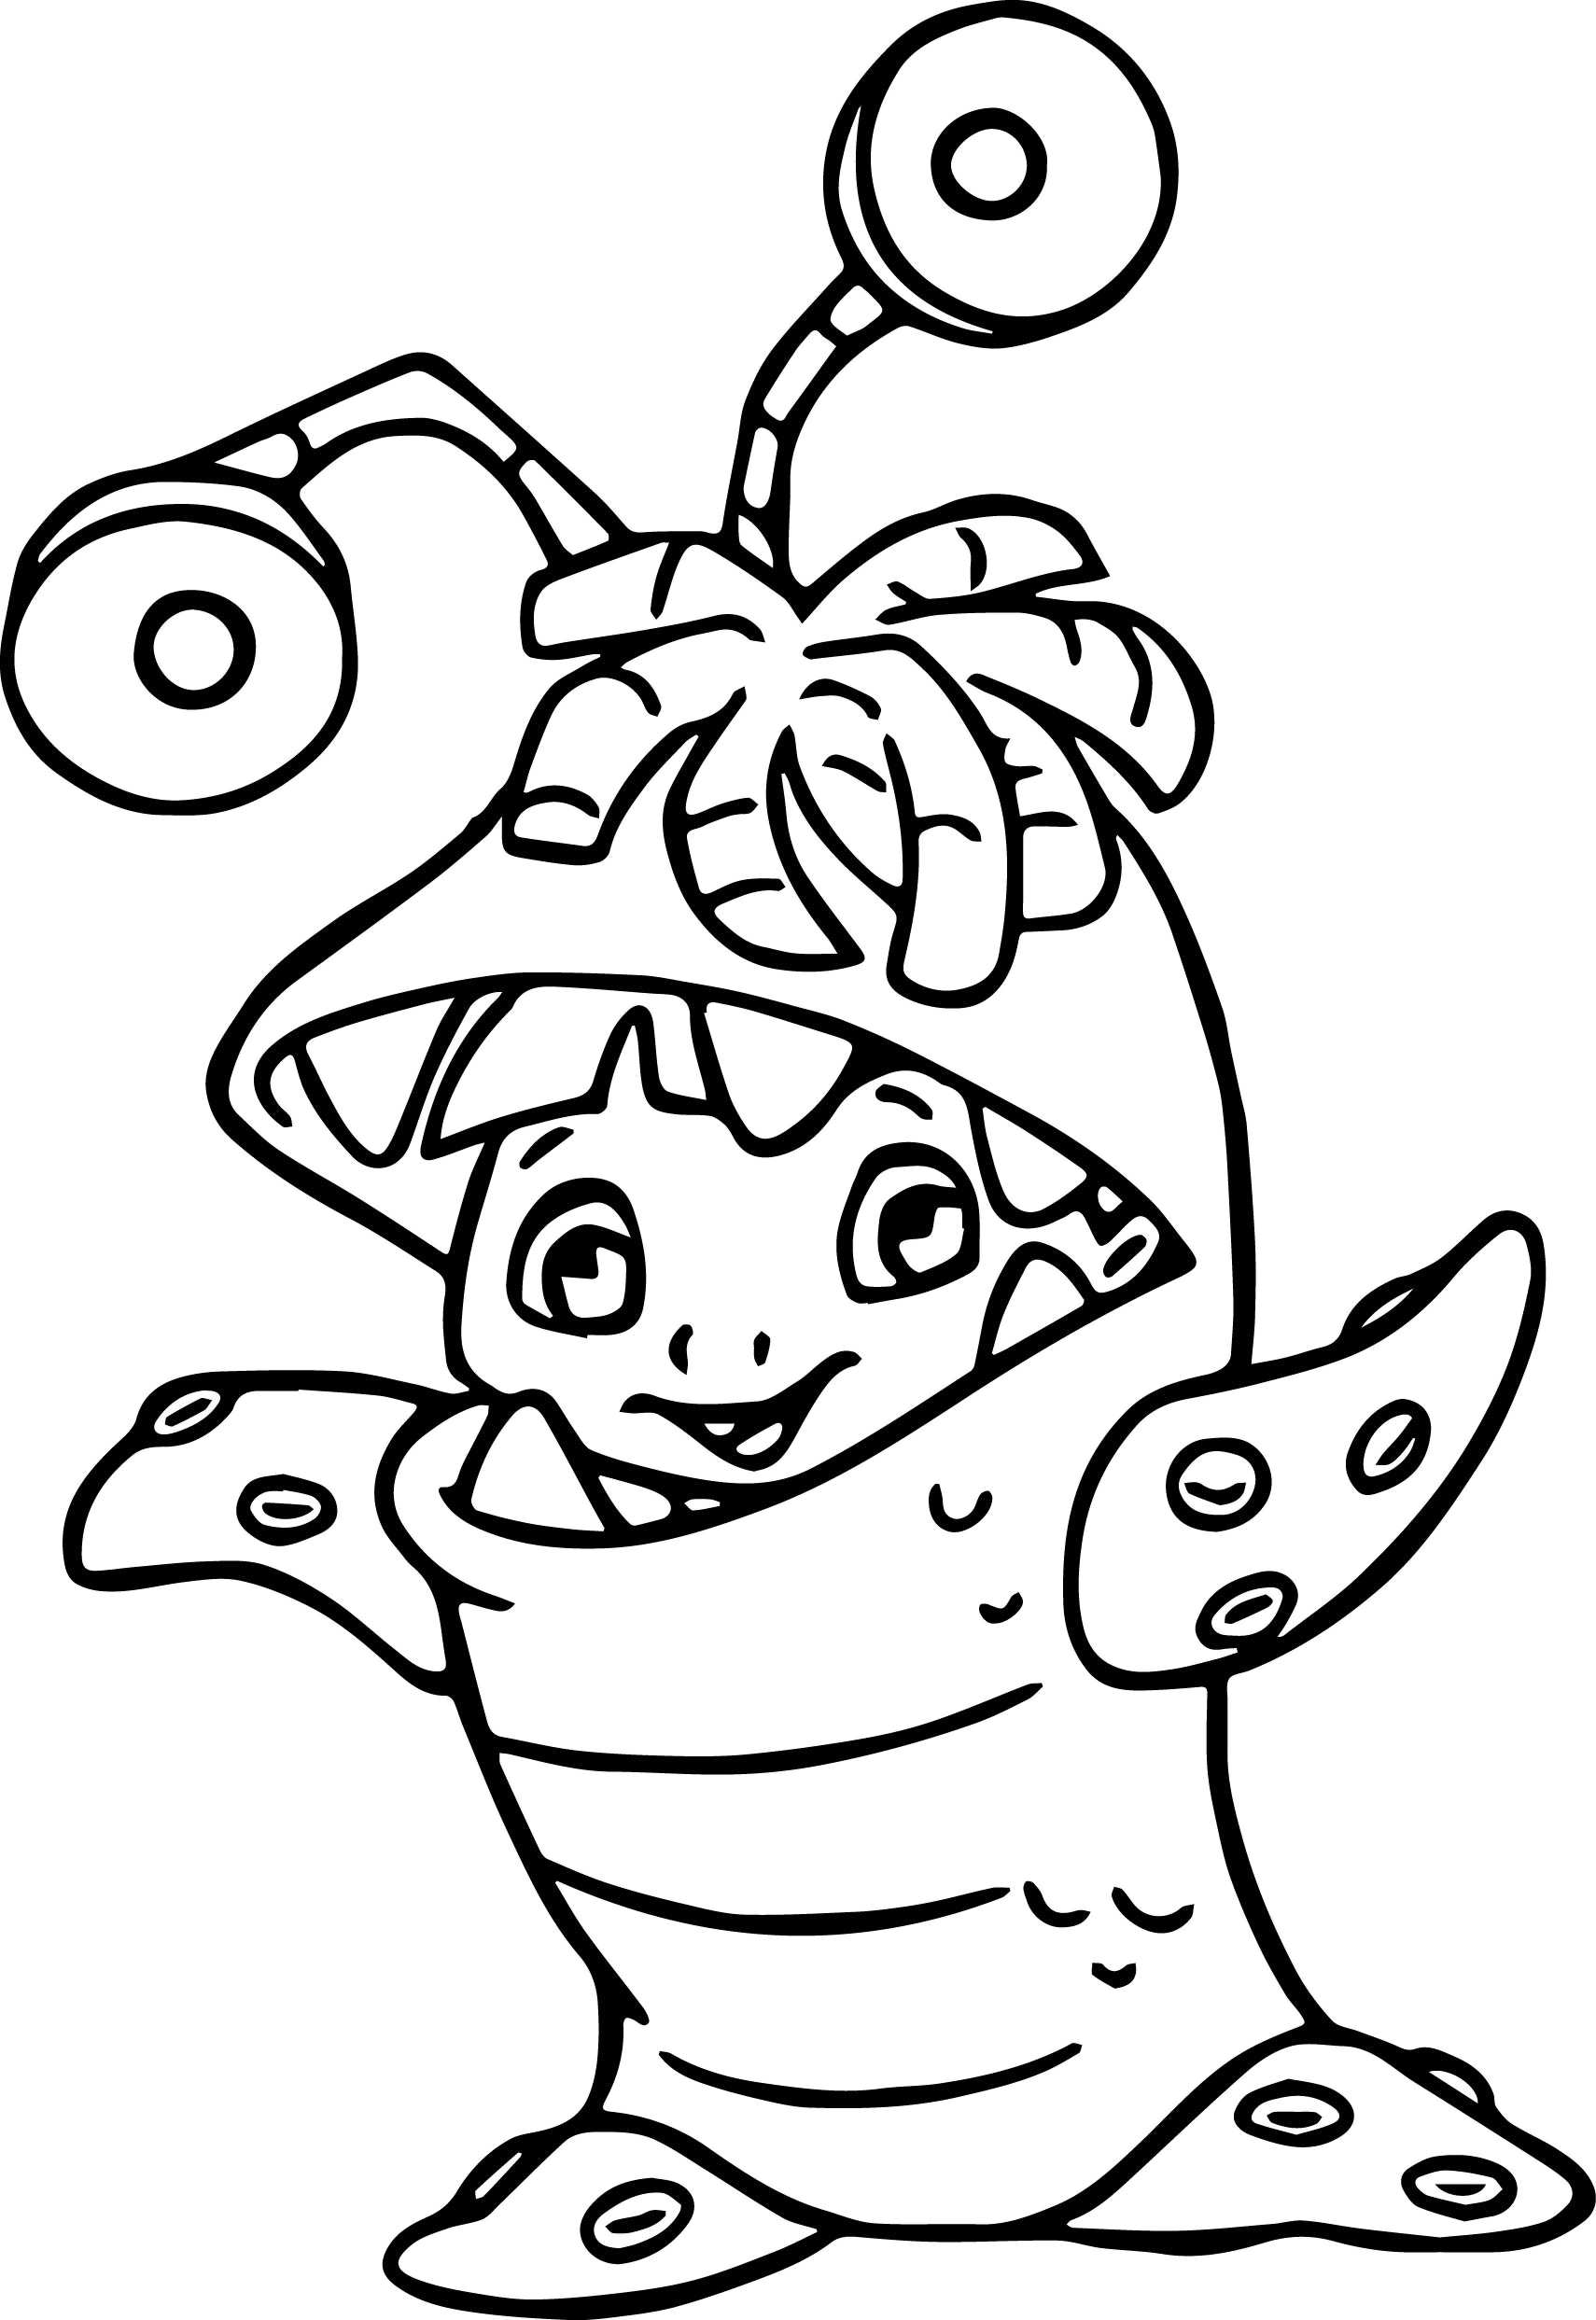 1710x2486 Film Bear Coloring Pages Mermaid Coloring Pages Mike Wazowski